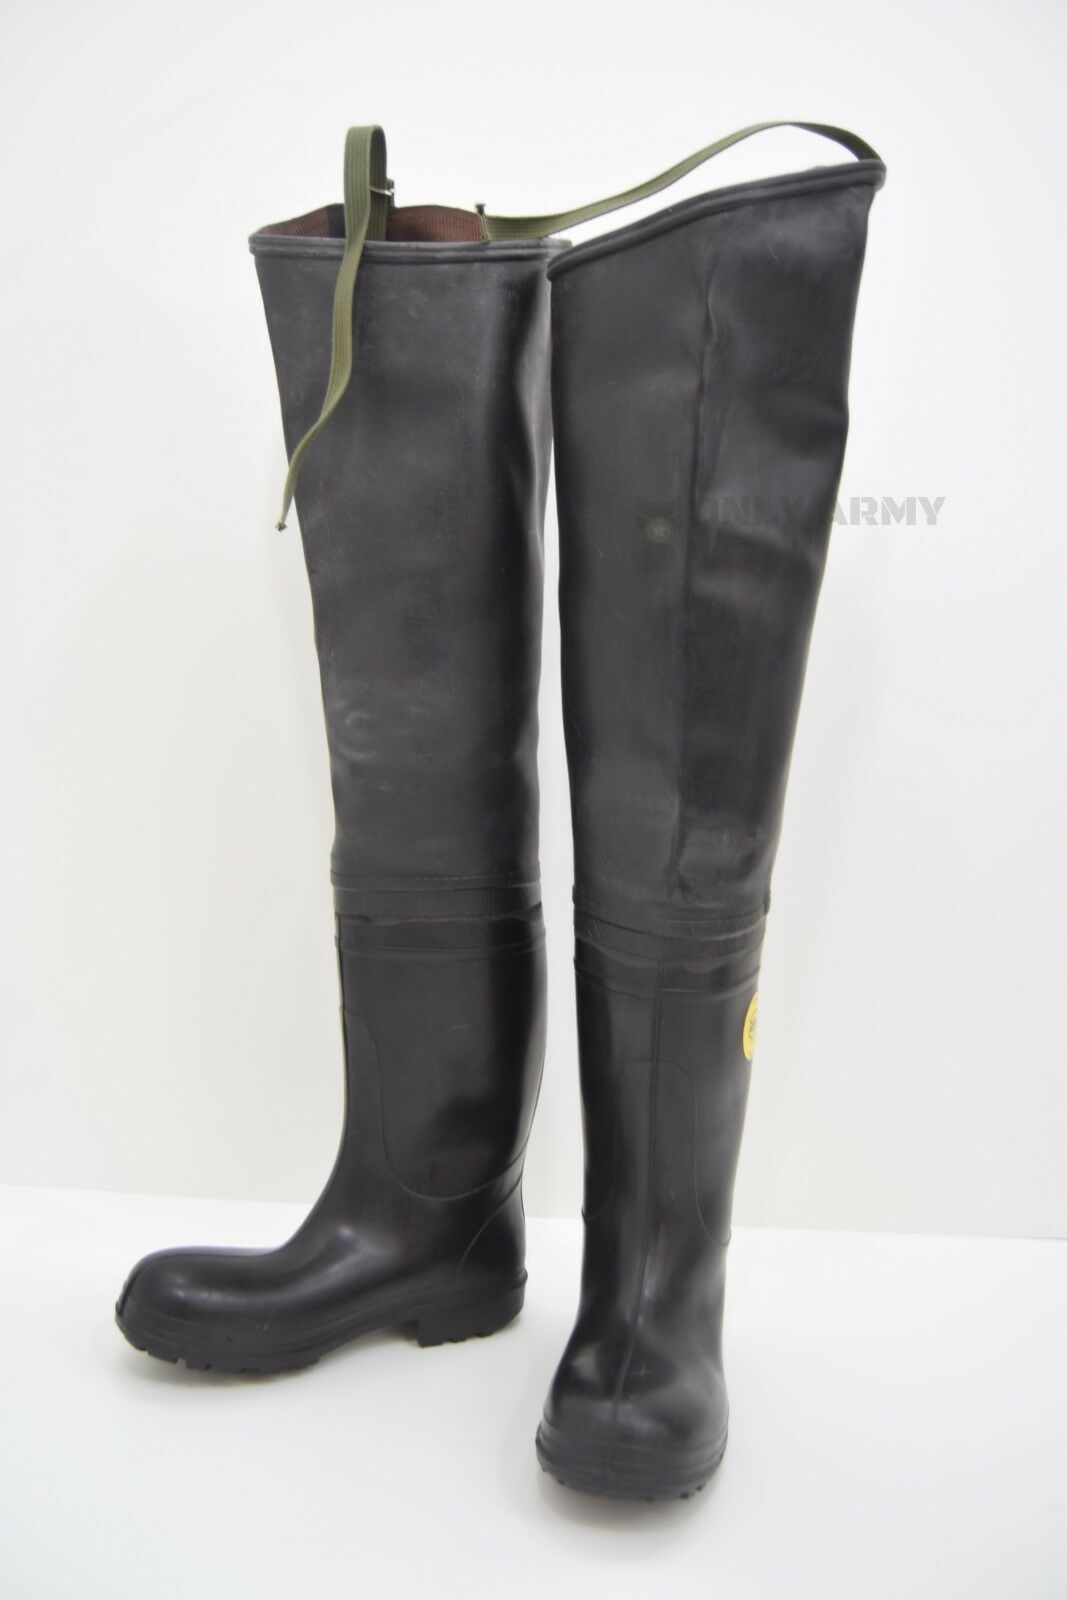 Original BEKINA Thigh Wader Boots Waders Wellingtons Heavy Duty Military Issue